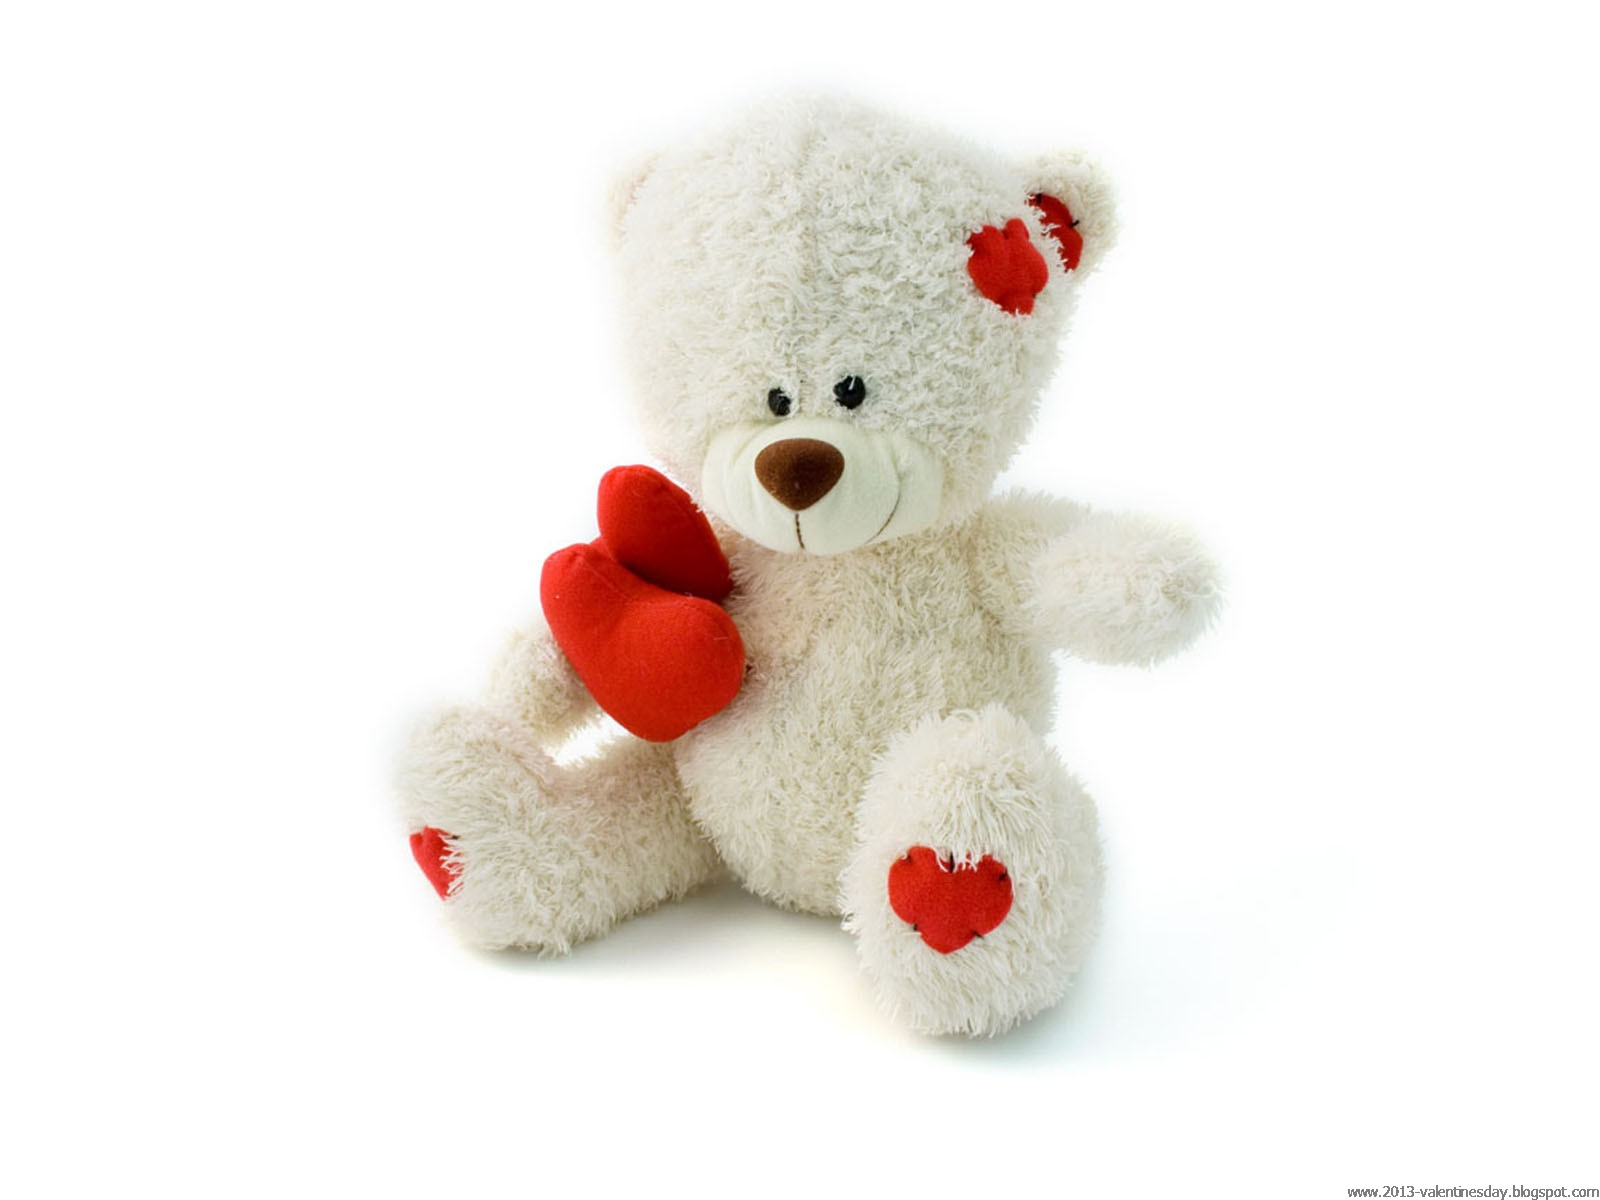 Happy teddy day 2013 teddy bear hd wallpapers and quotes online happy teddy day 2013 teddy bear hd wallpapers and quotes voltagebd Image collections